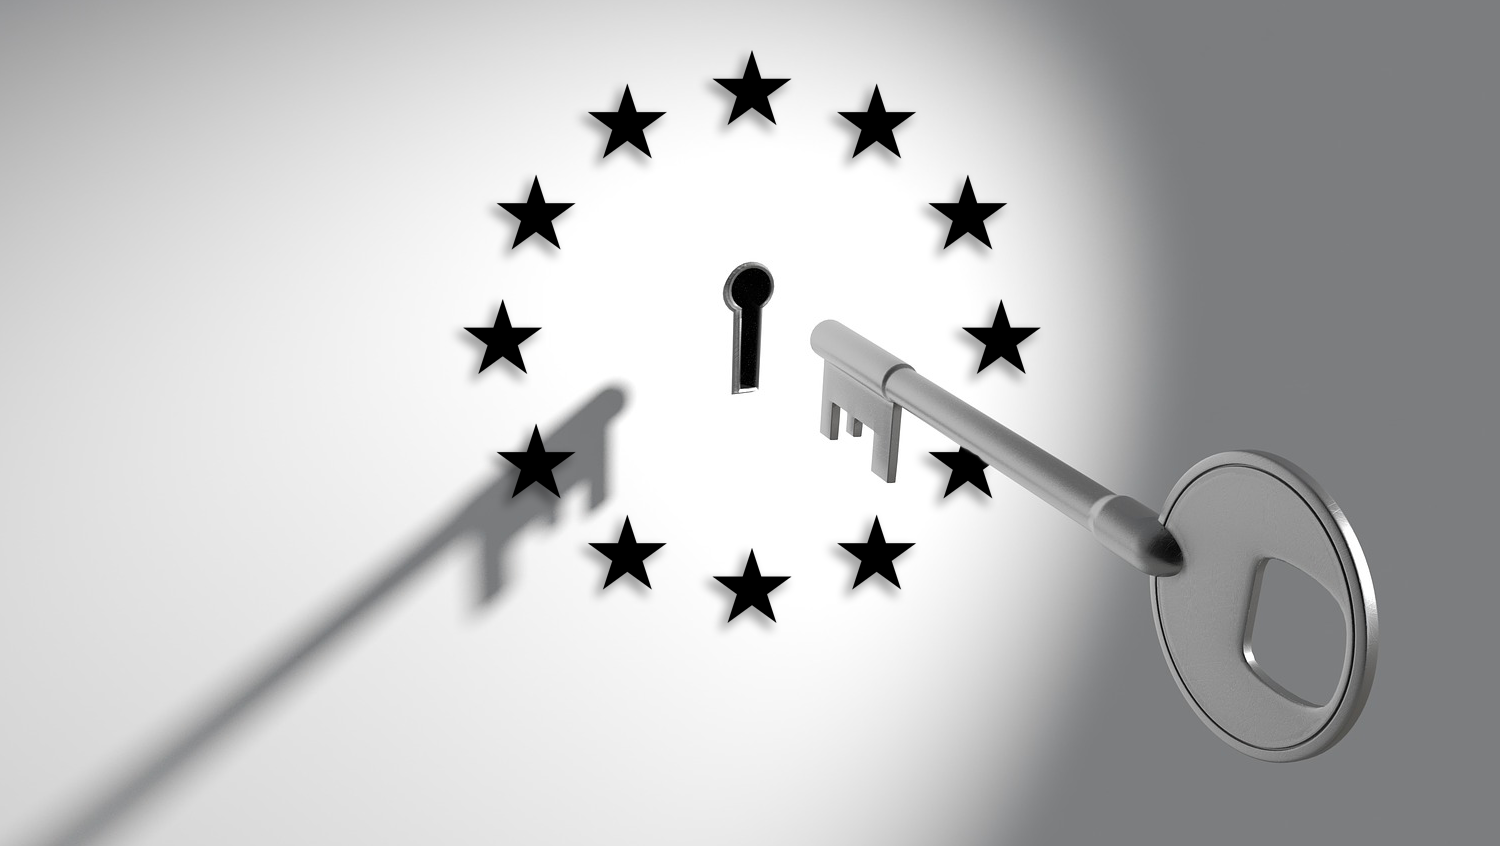 How to make programmatic advertising work in a post-GDPR world